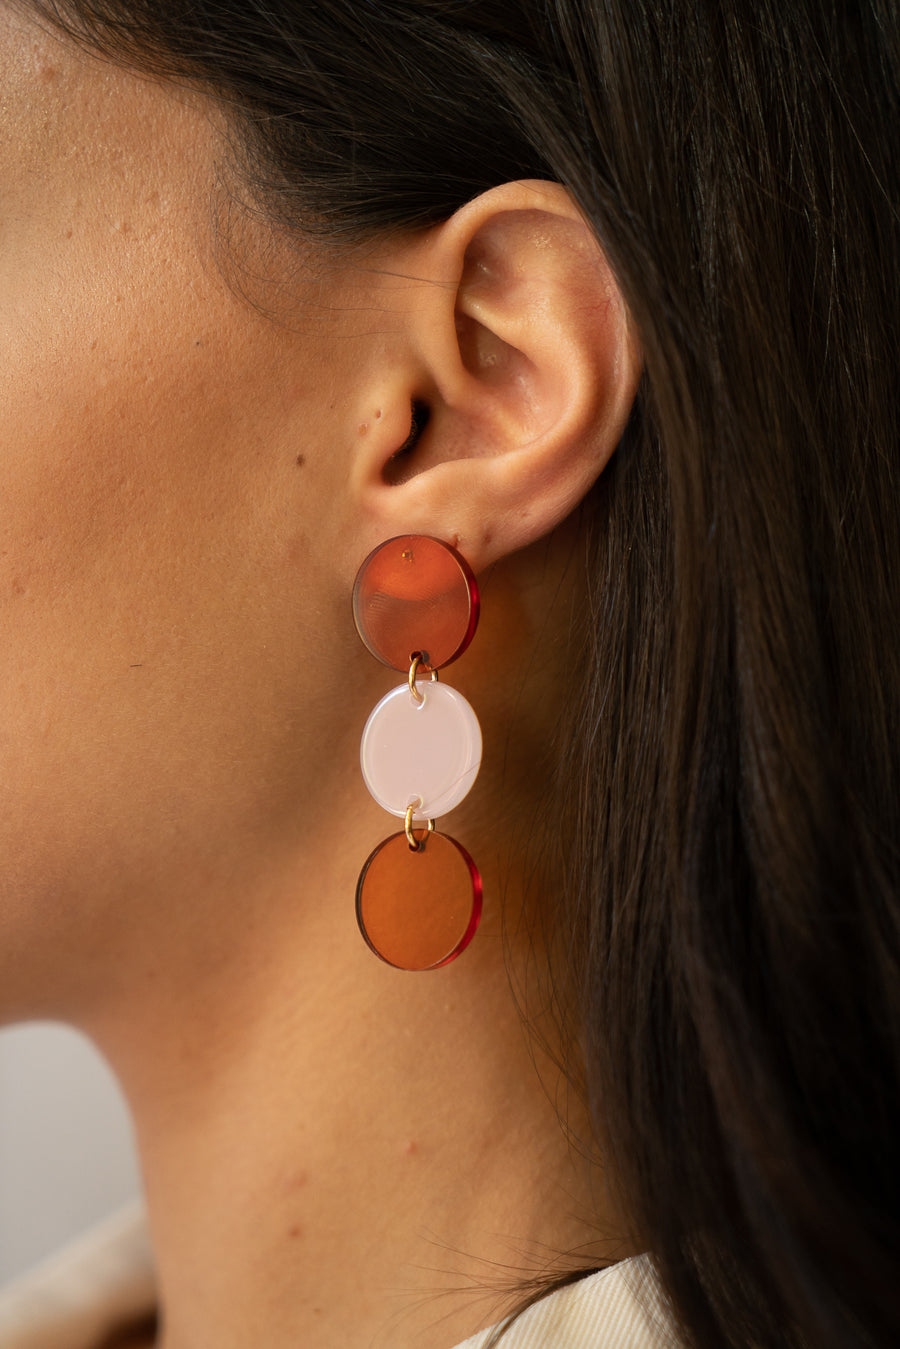 Trio Earrings in Tangerine & Cake